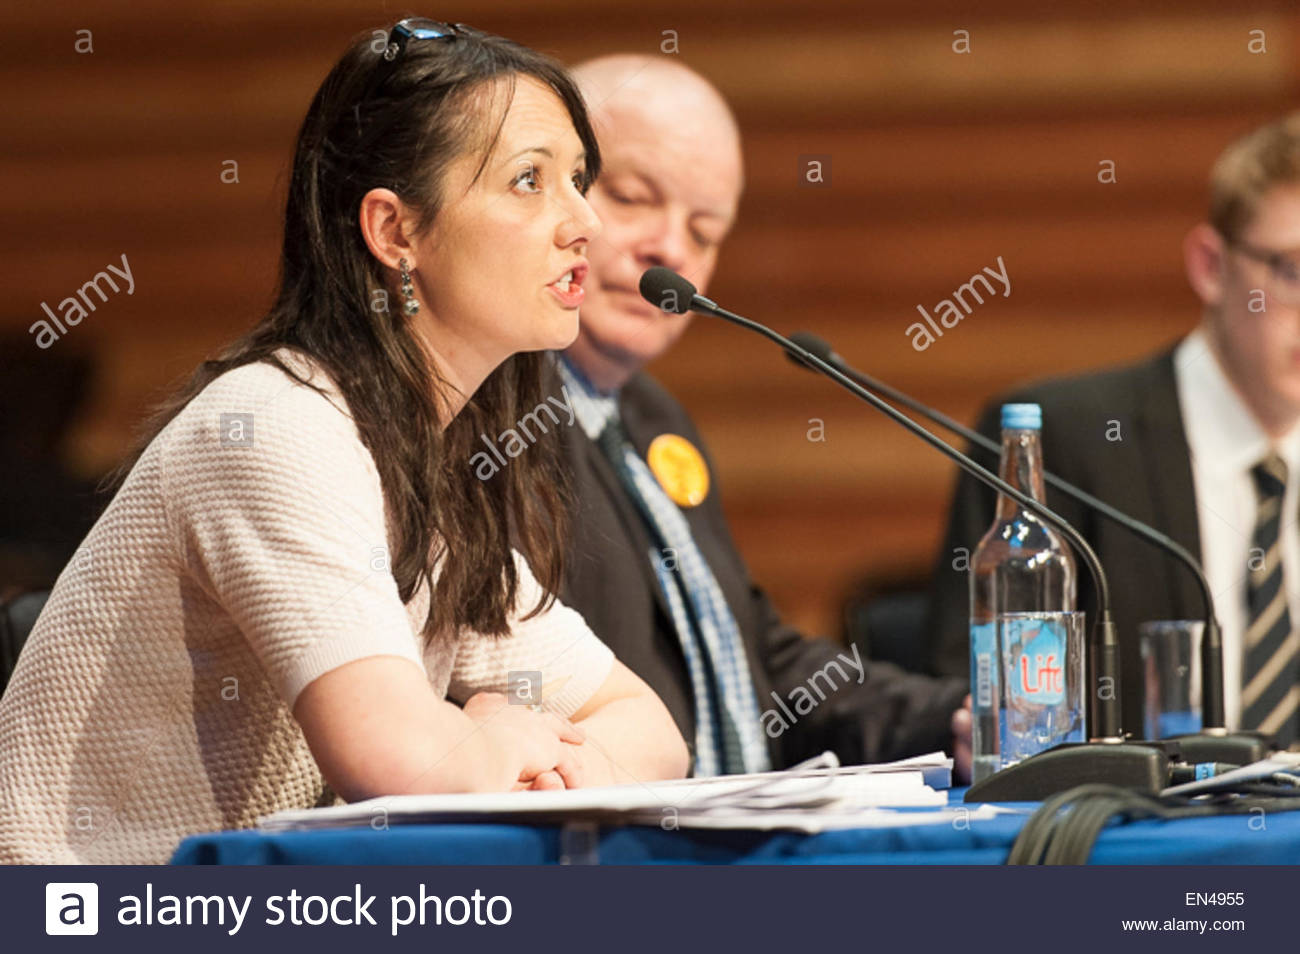 Amelie Boleyn, Green Party candidate for Sevenoaks, attending a question time event at Sevenoaks School. - Stock Image